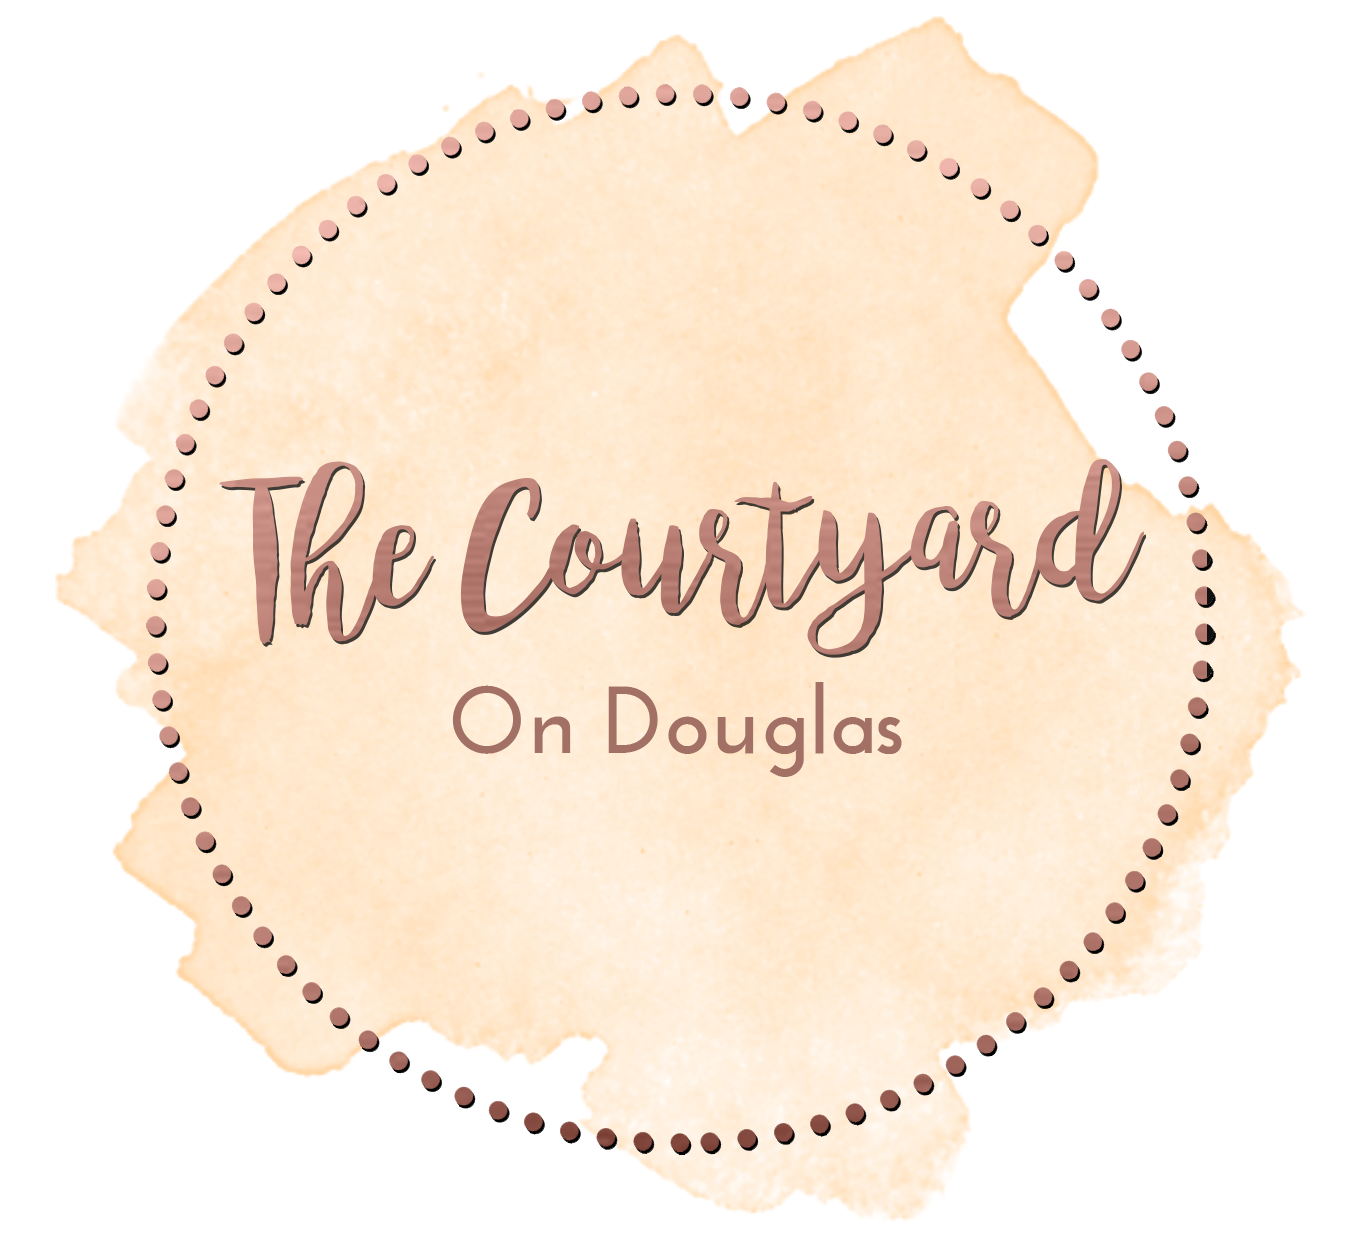 The Courtyard On Douglas